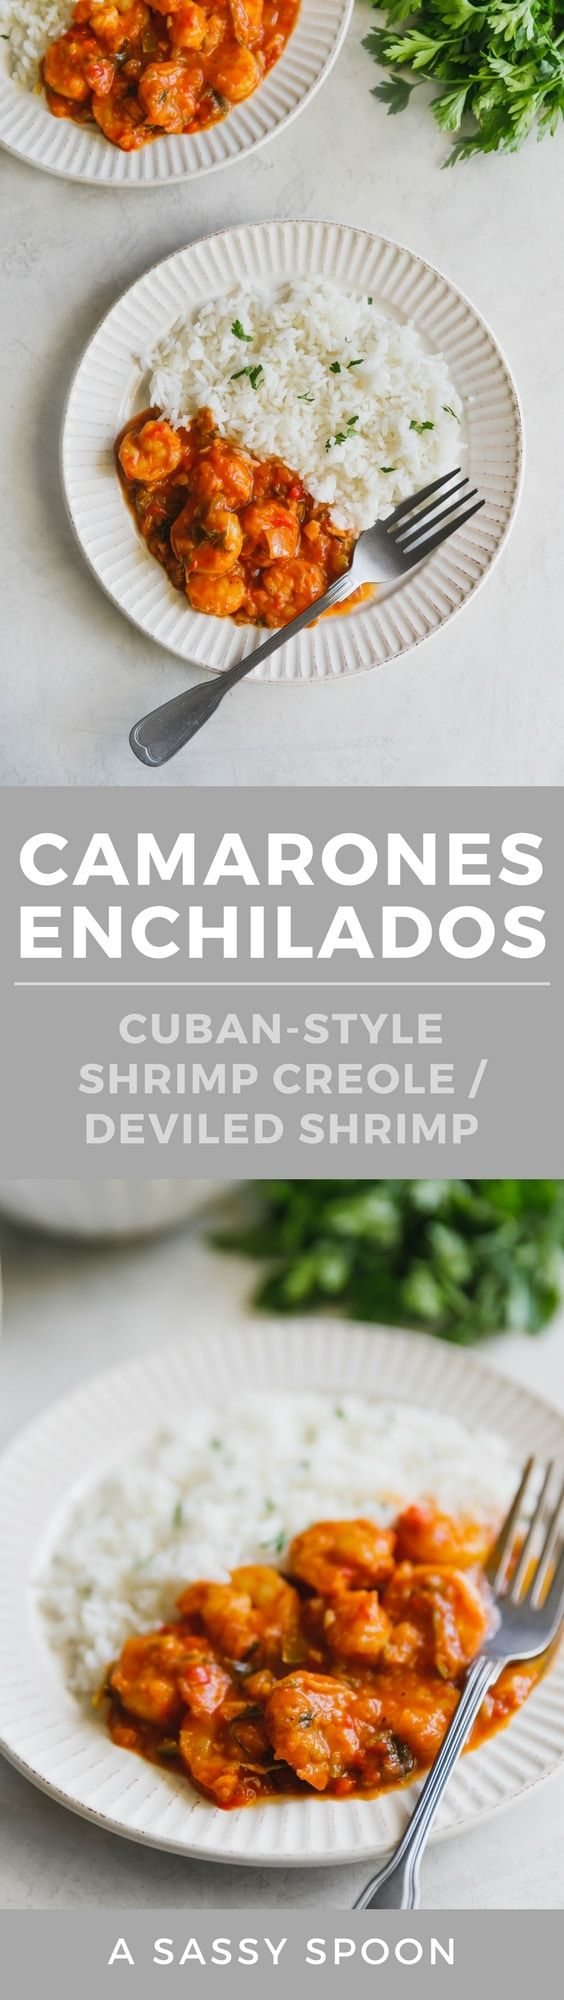 Spicy, saucy, fragrant Cuban-style deviled shrimp (or shrimp creole, or camarones enchilados) served over rice! Perfect for special occasions or weeknight meals! via @asassyspoon